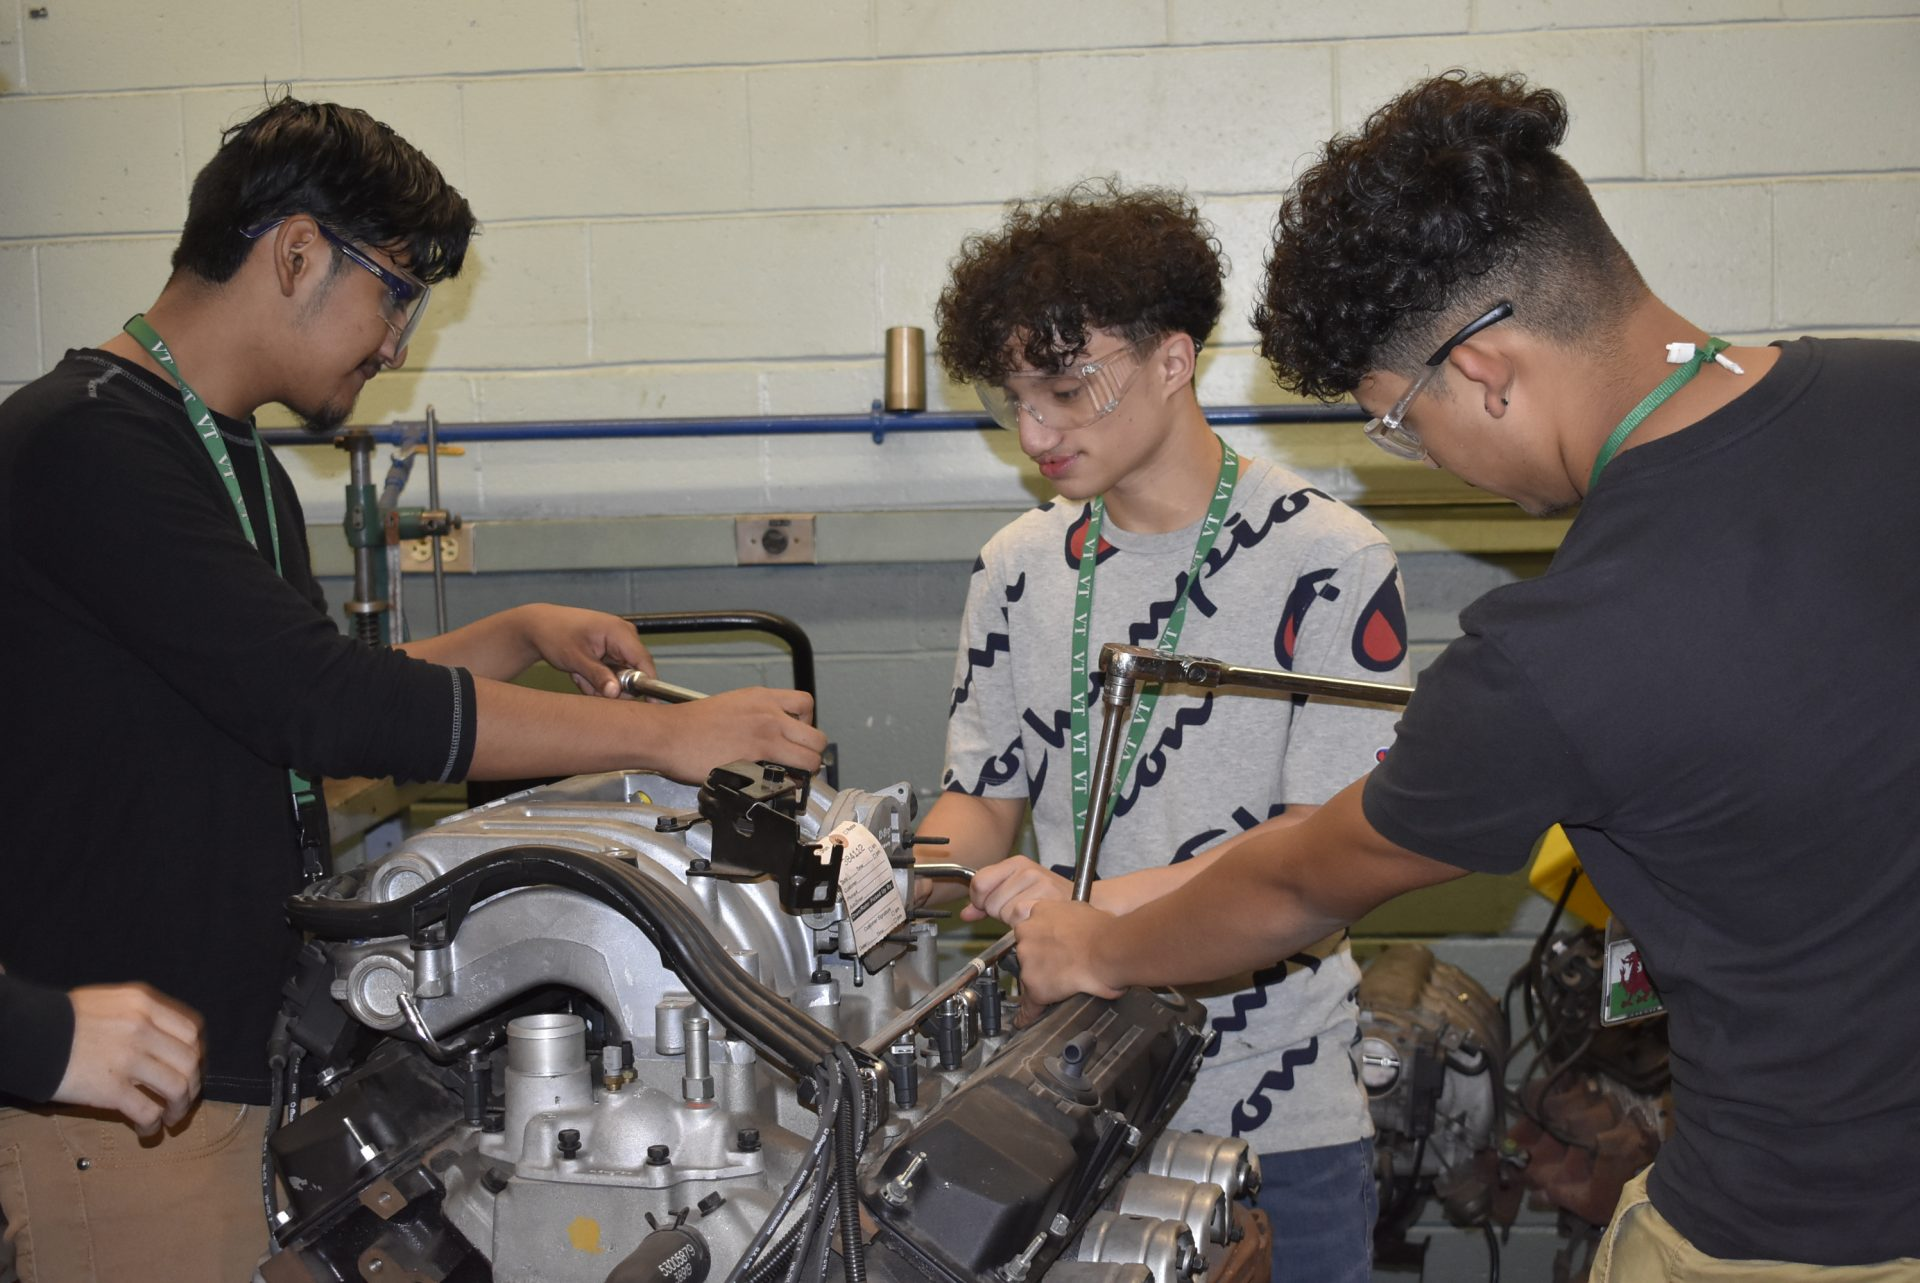 Automotive students working on car parts